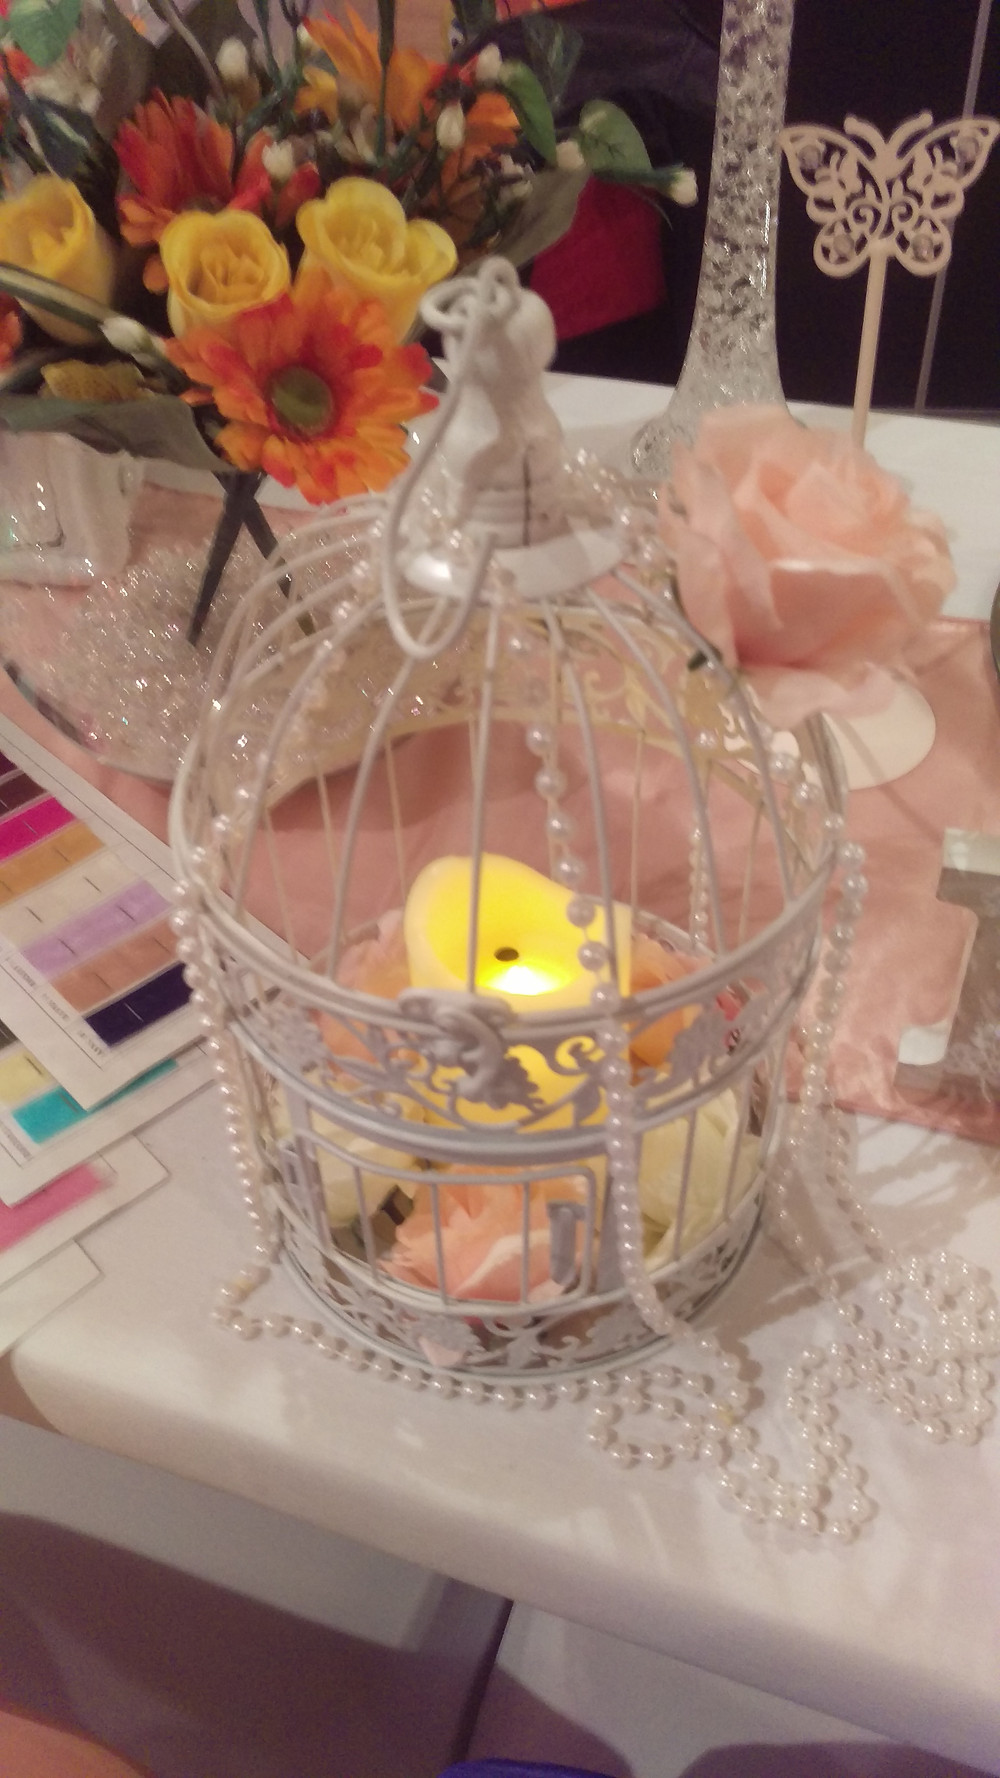 Bird Cage Centerpiece with Pearl Garland and Roses Wedding Venue Table Decoration by Embellish Venue Styling Kent - www.embellishvenuestyling.uk